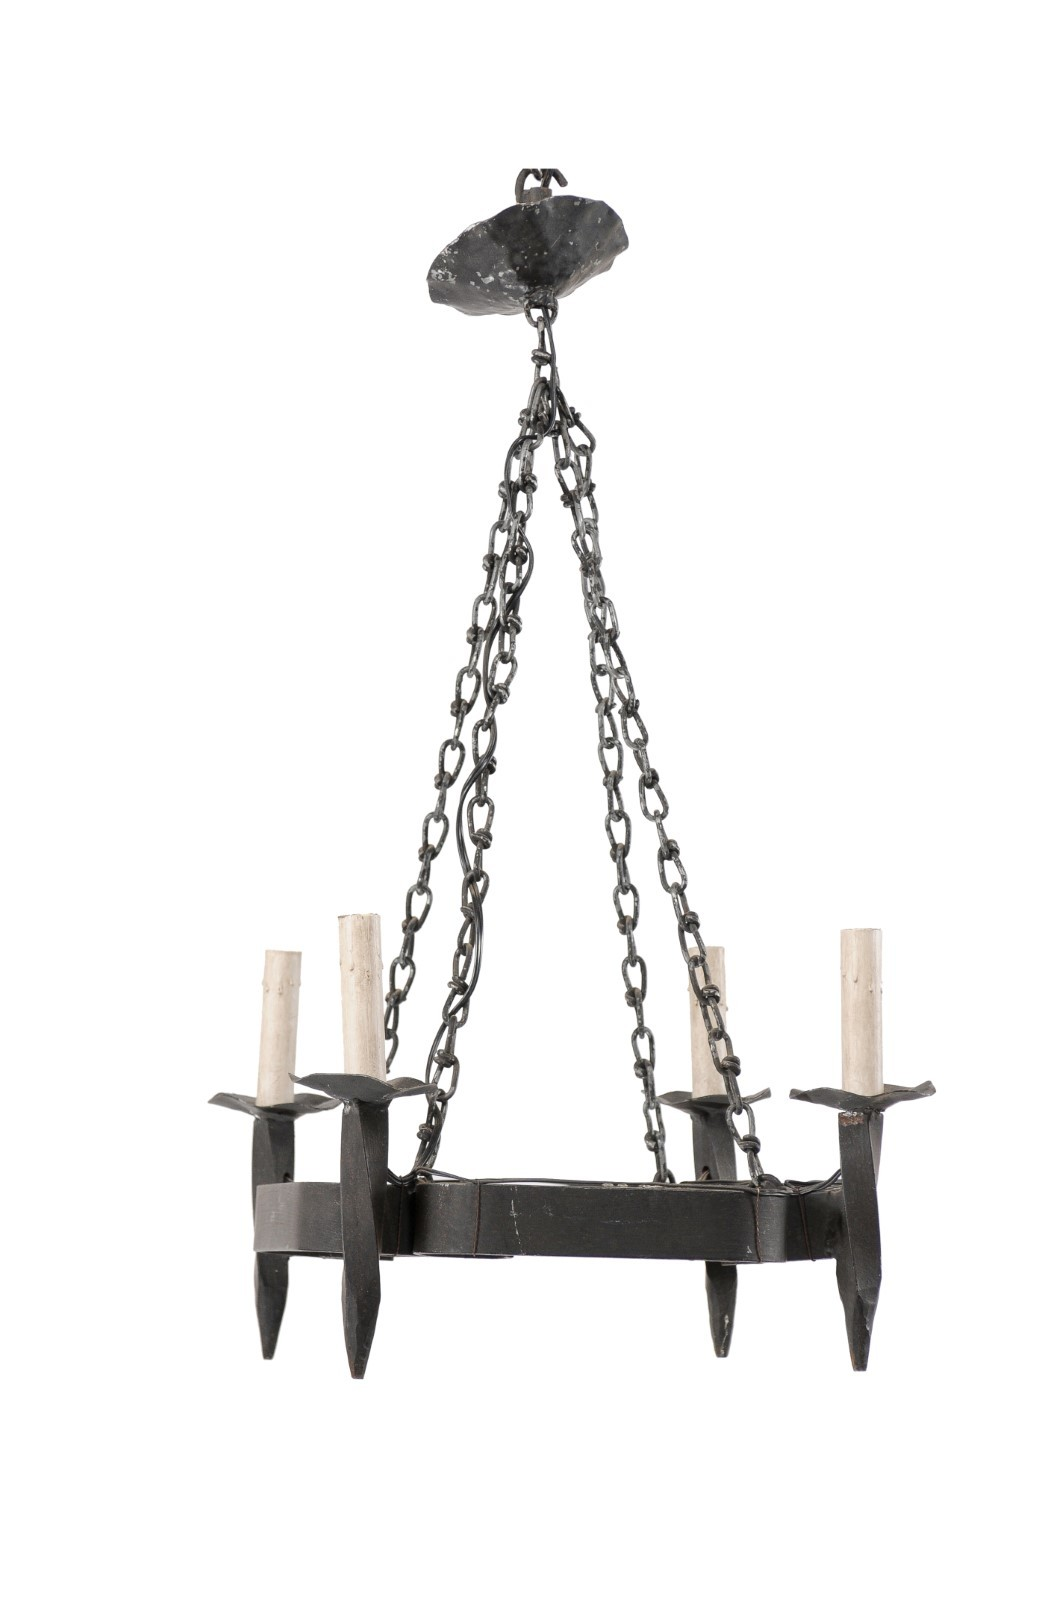 French Square-Shaped Iron Hanging Light